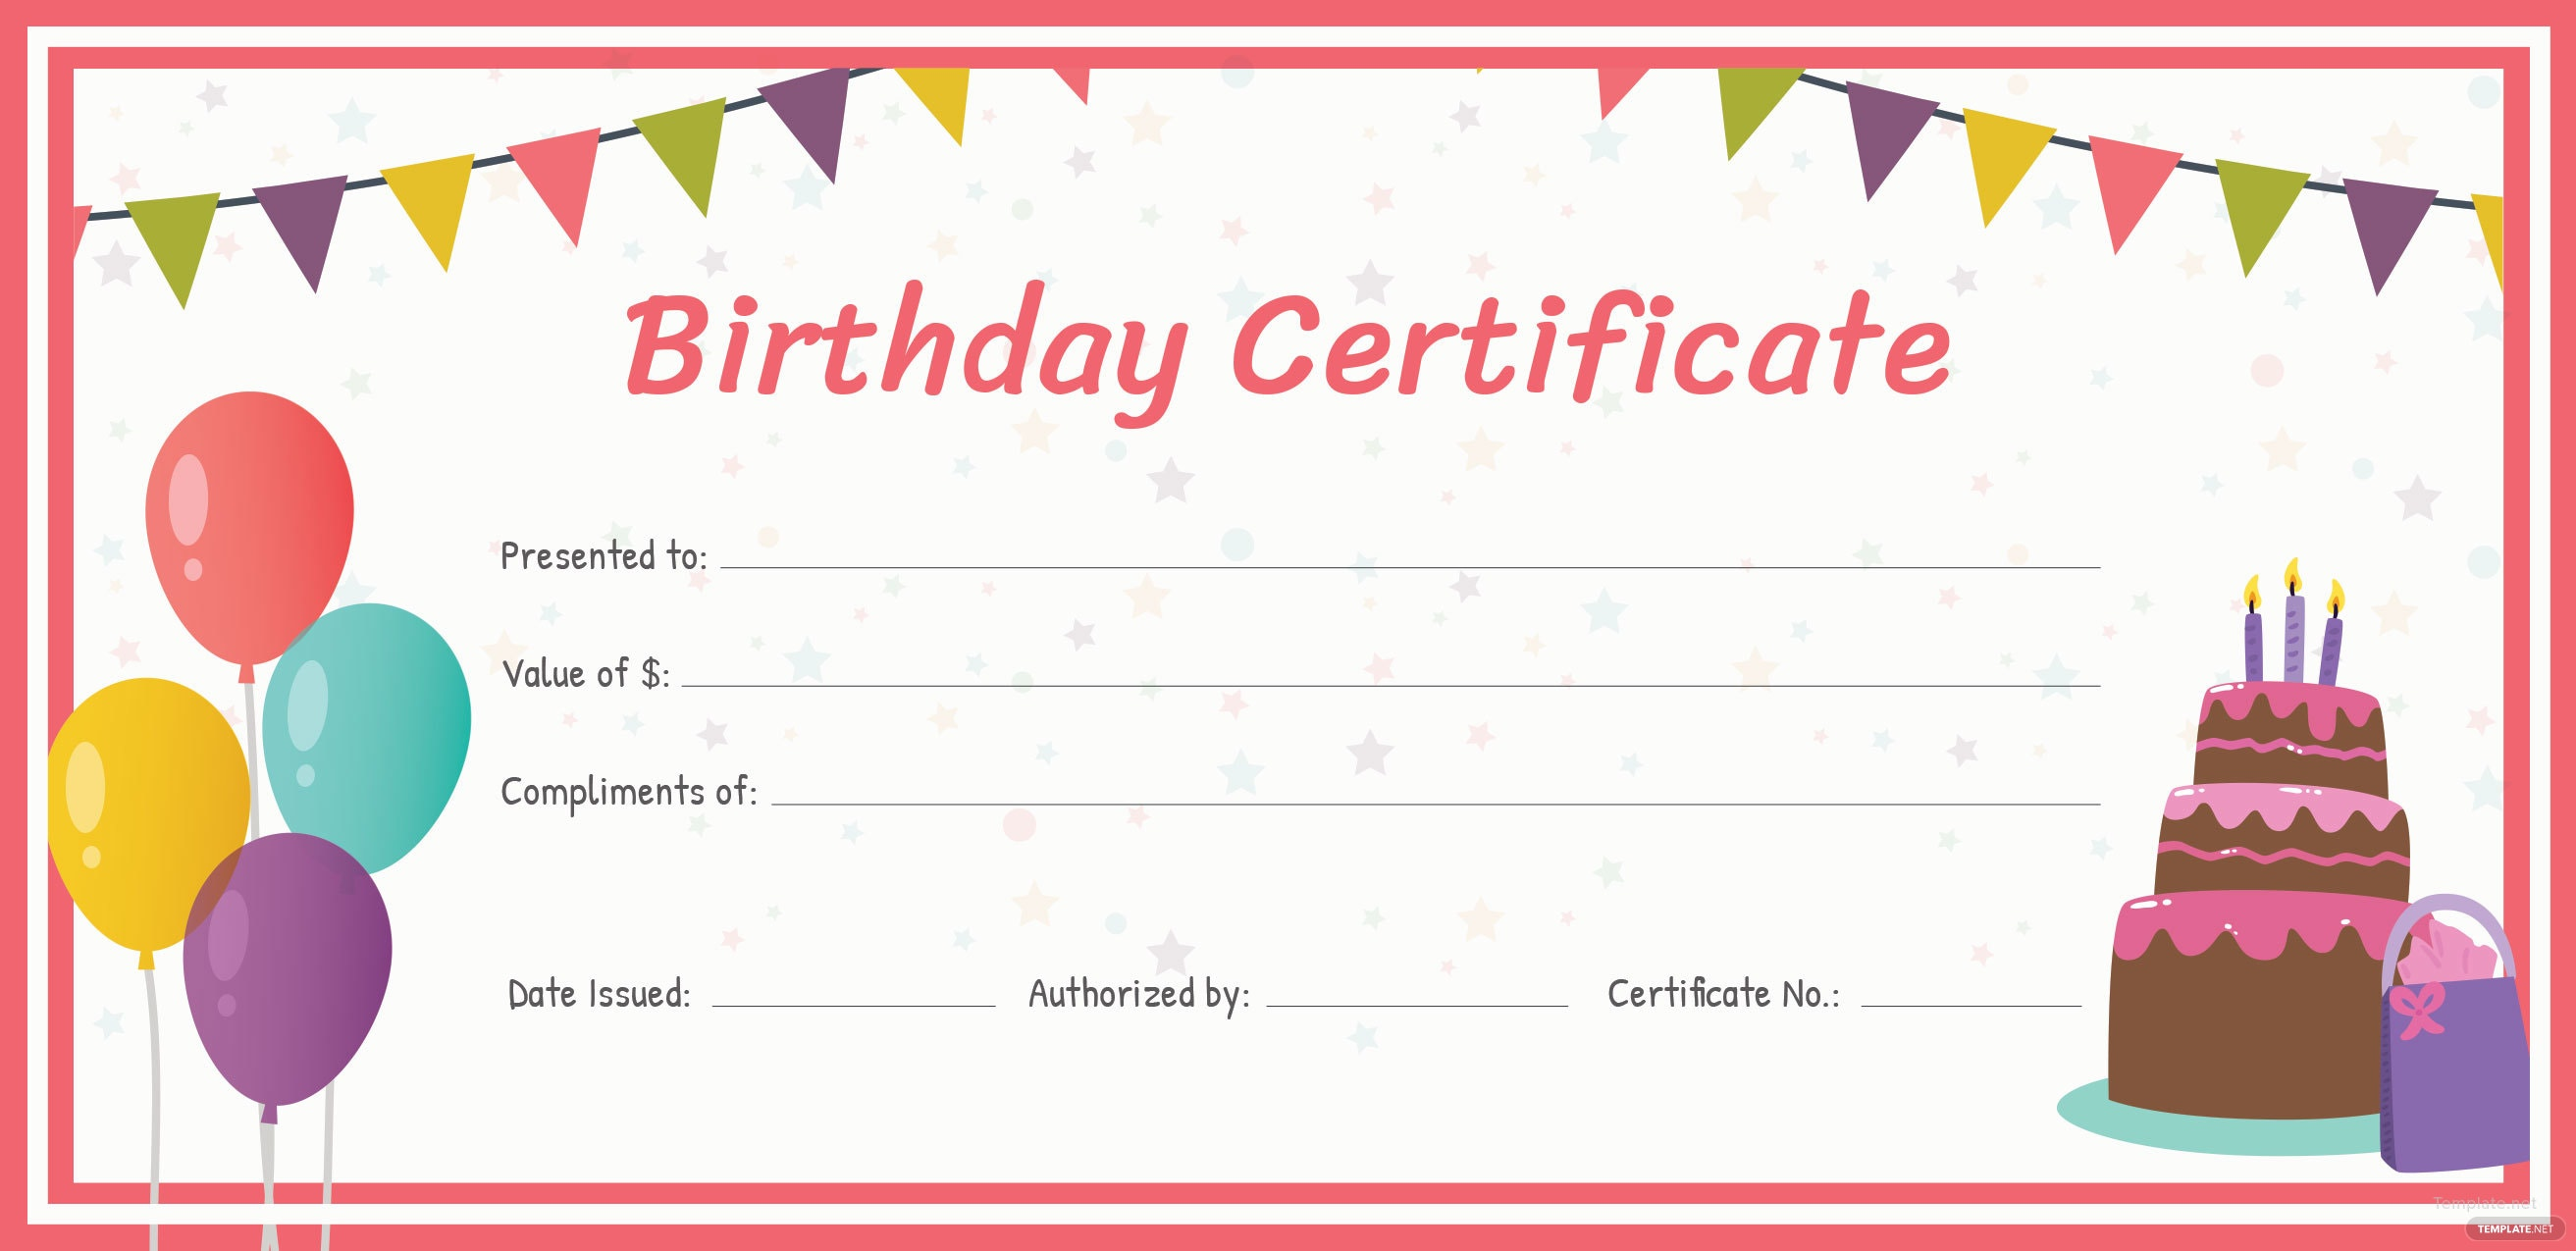 gift certificate template word free download - free birthday gift certificate template in adobe